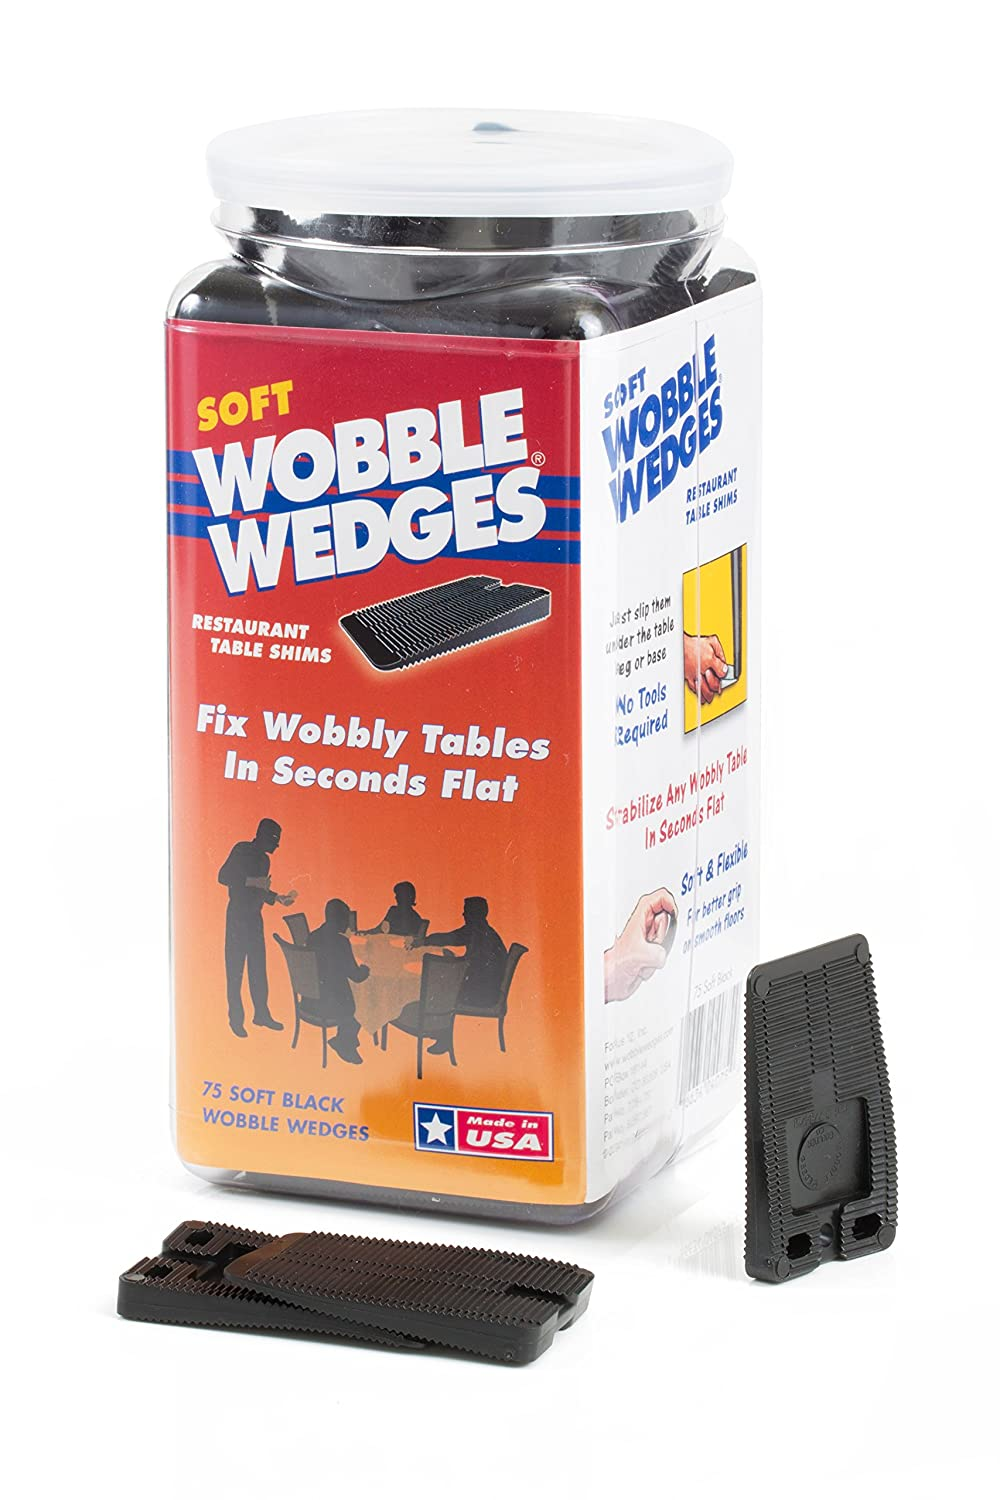 Wobble Wedge - Soft Black - Table Shims - 75 pc